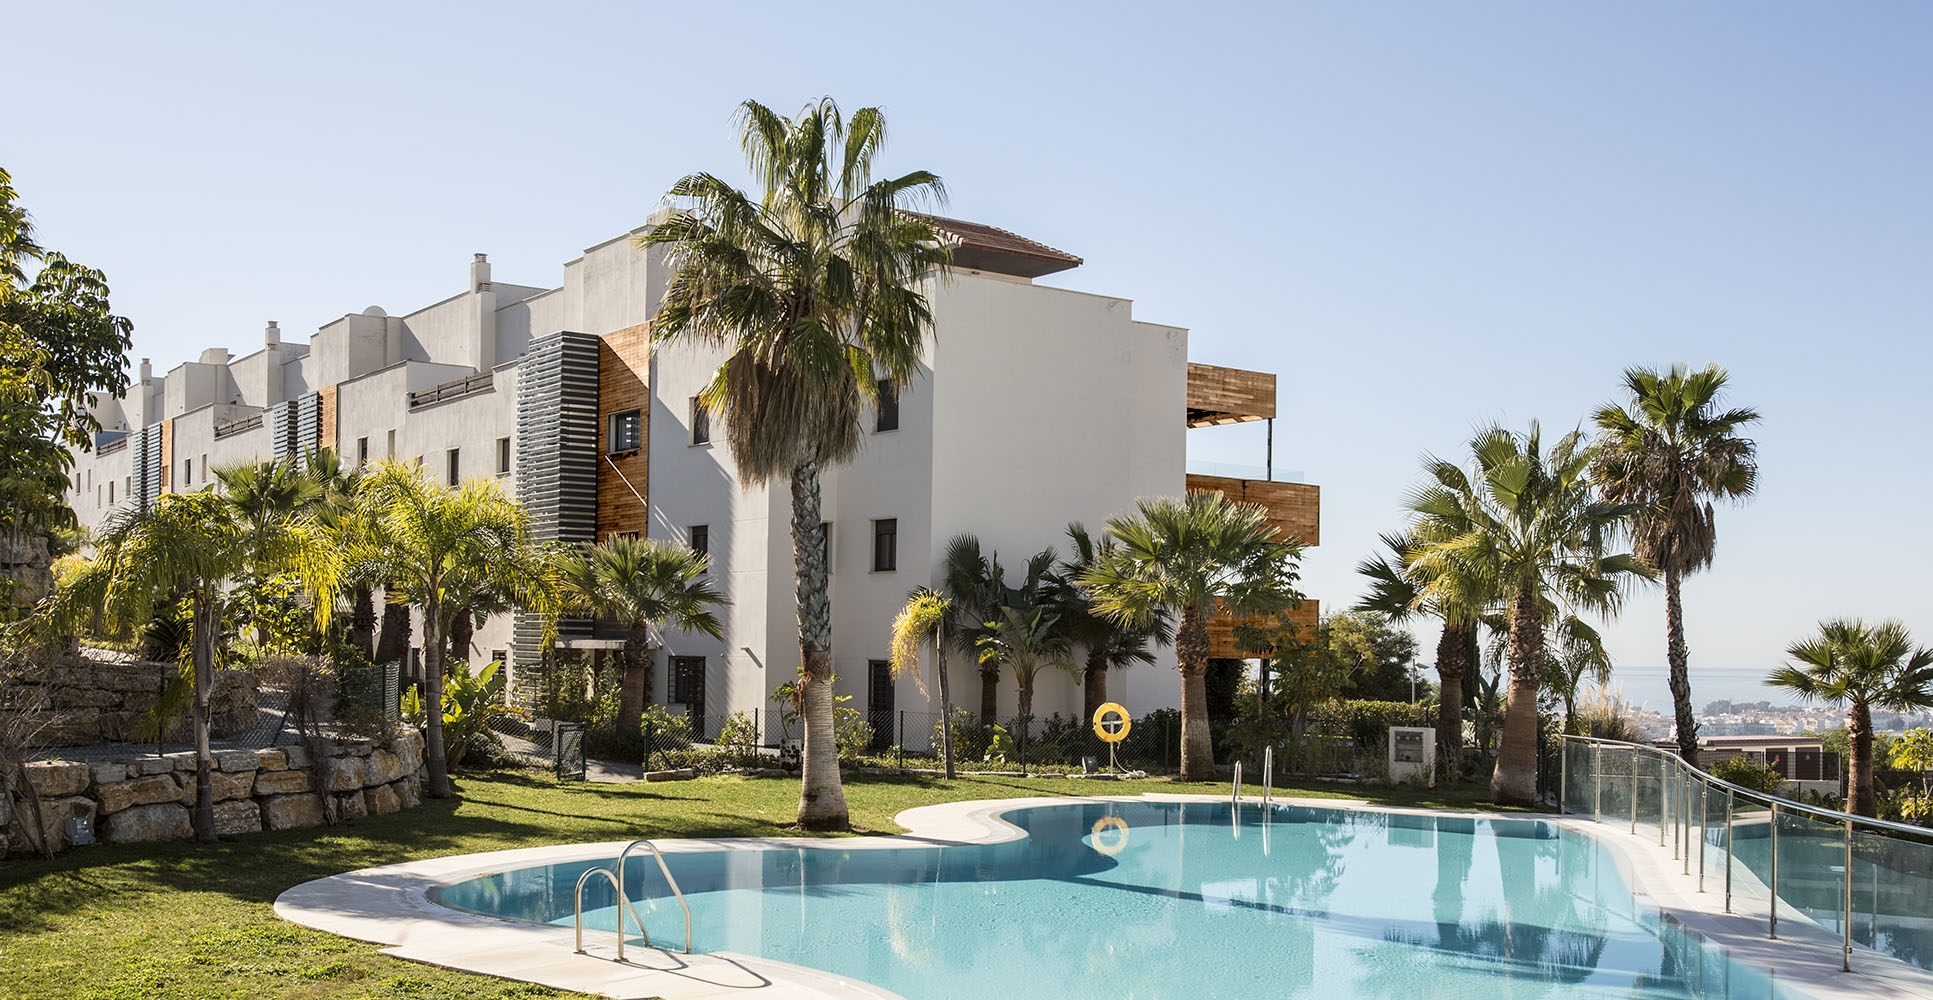 Marbella real estate investment